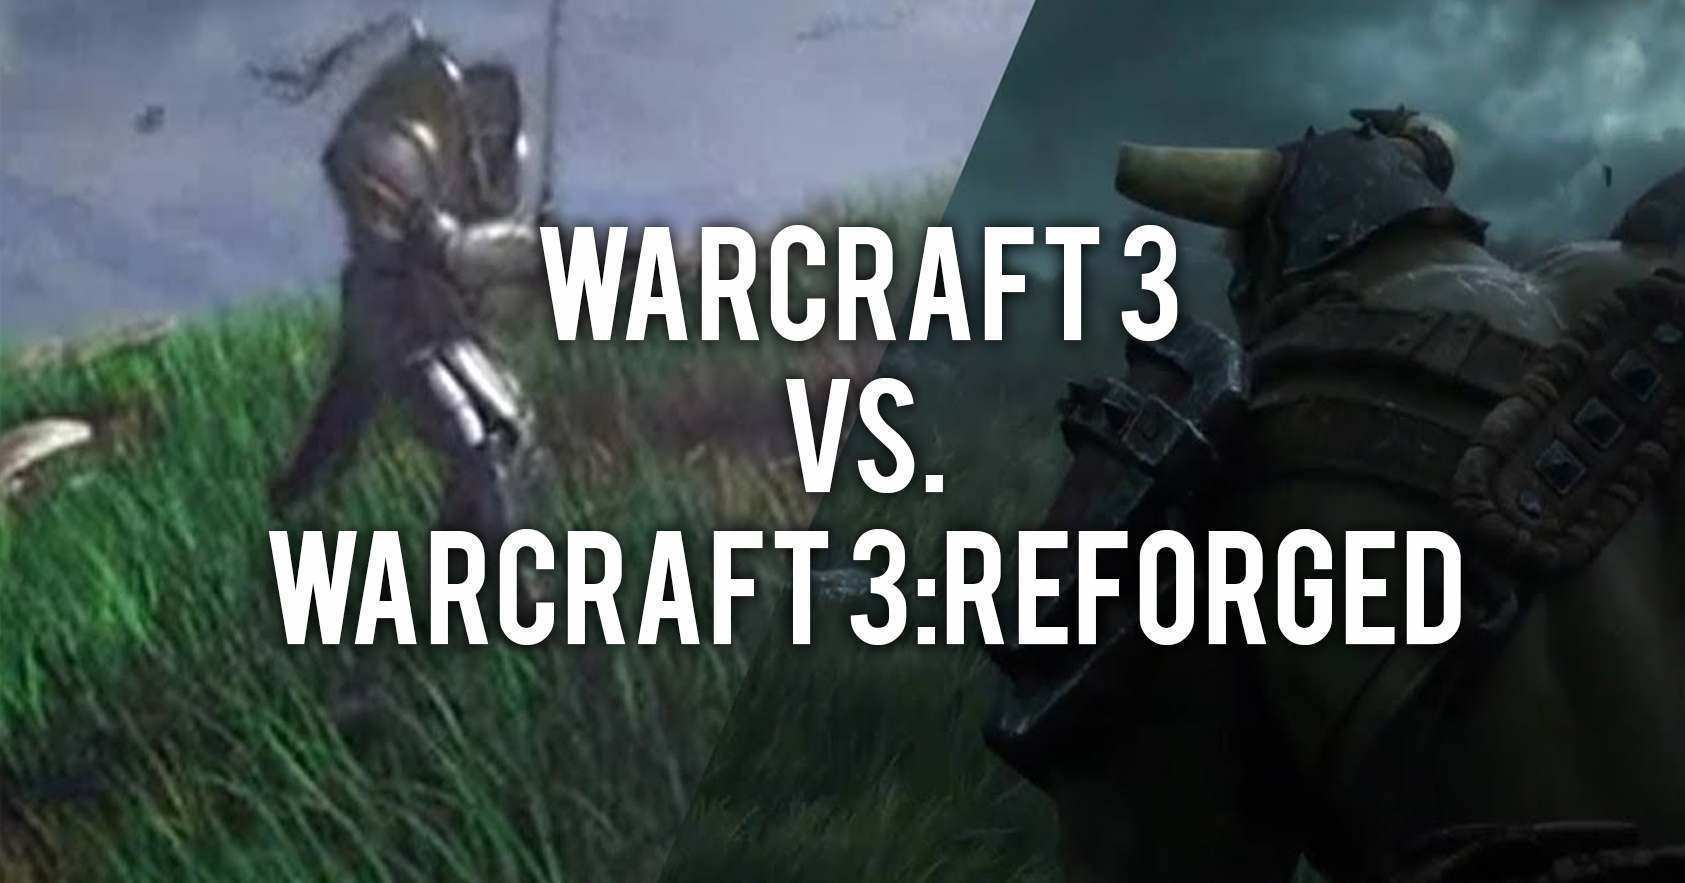 Warcraft 3 Reforged vs. Warcraft 3 Trailer Gegenüberstellung